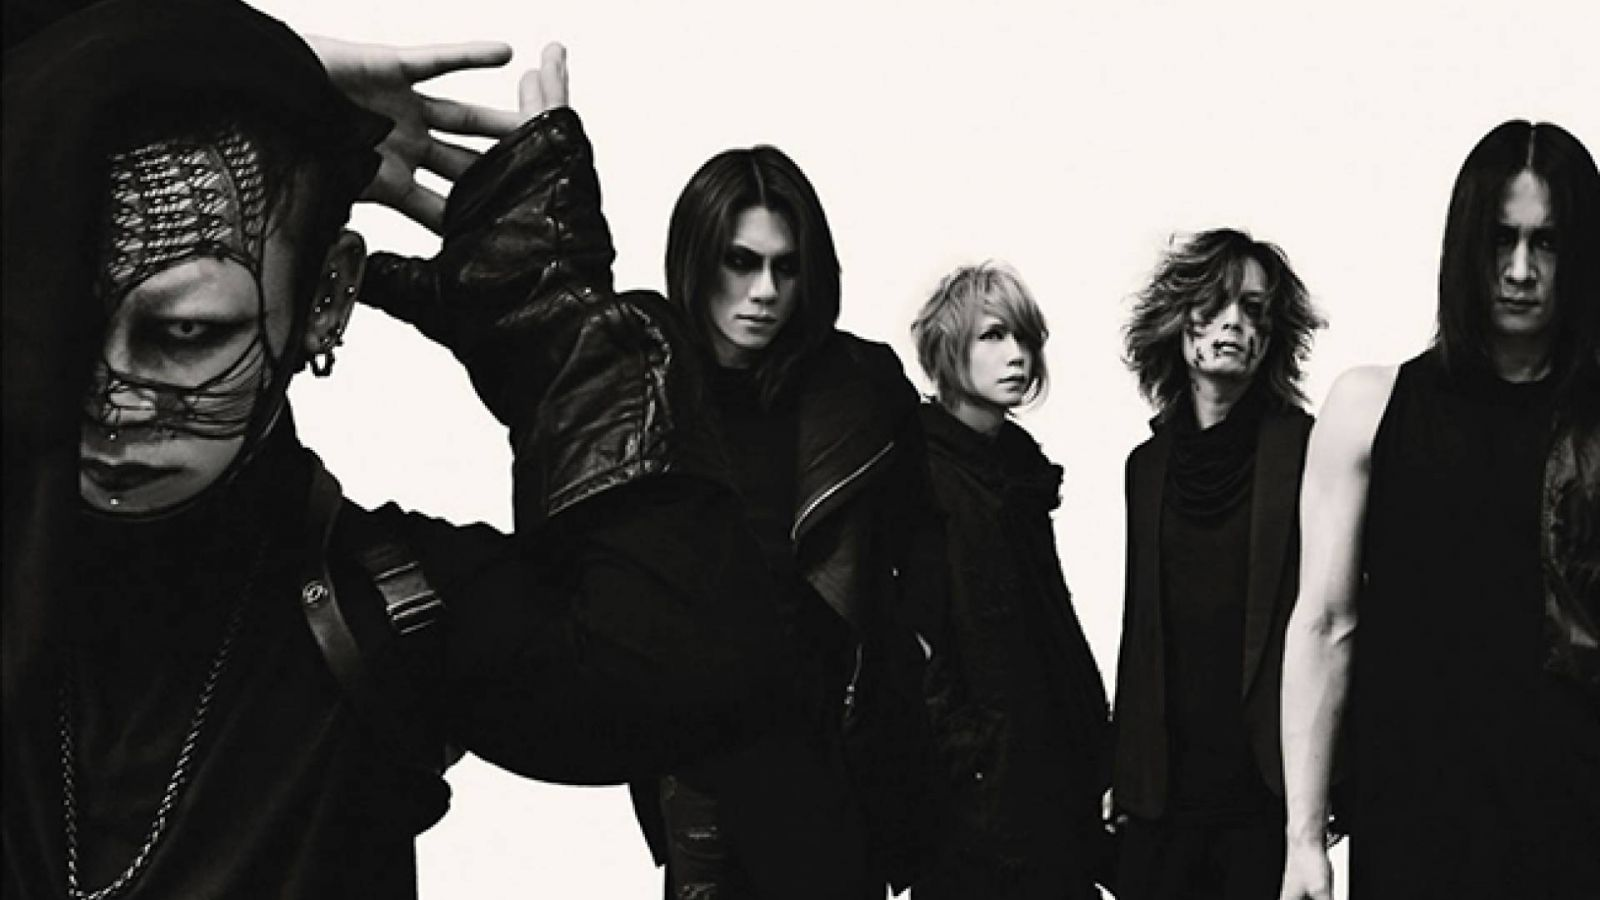 DIR EN GREY © DIR EN GREY. All Rights Reserved.